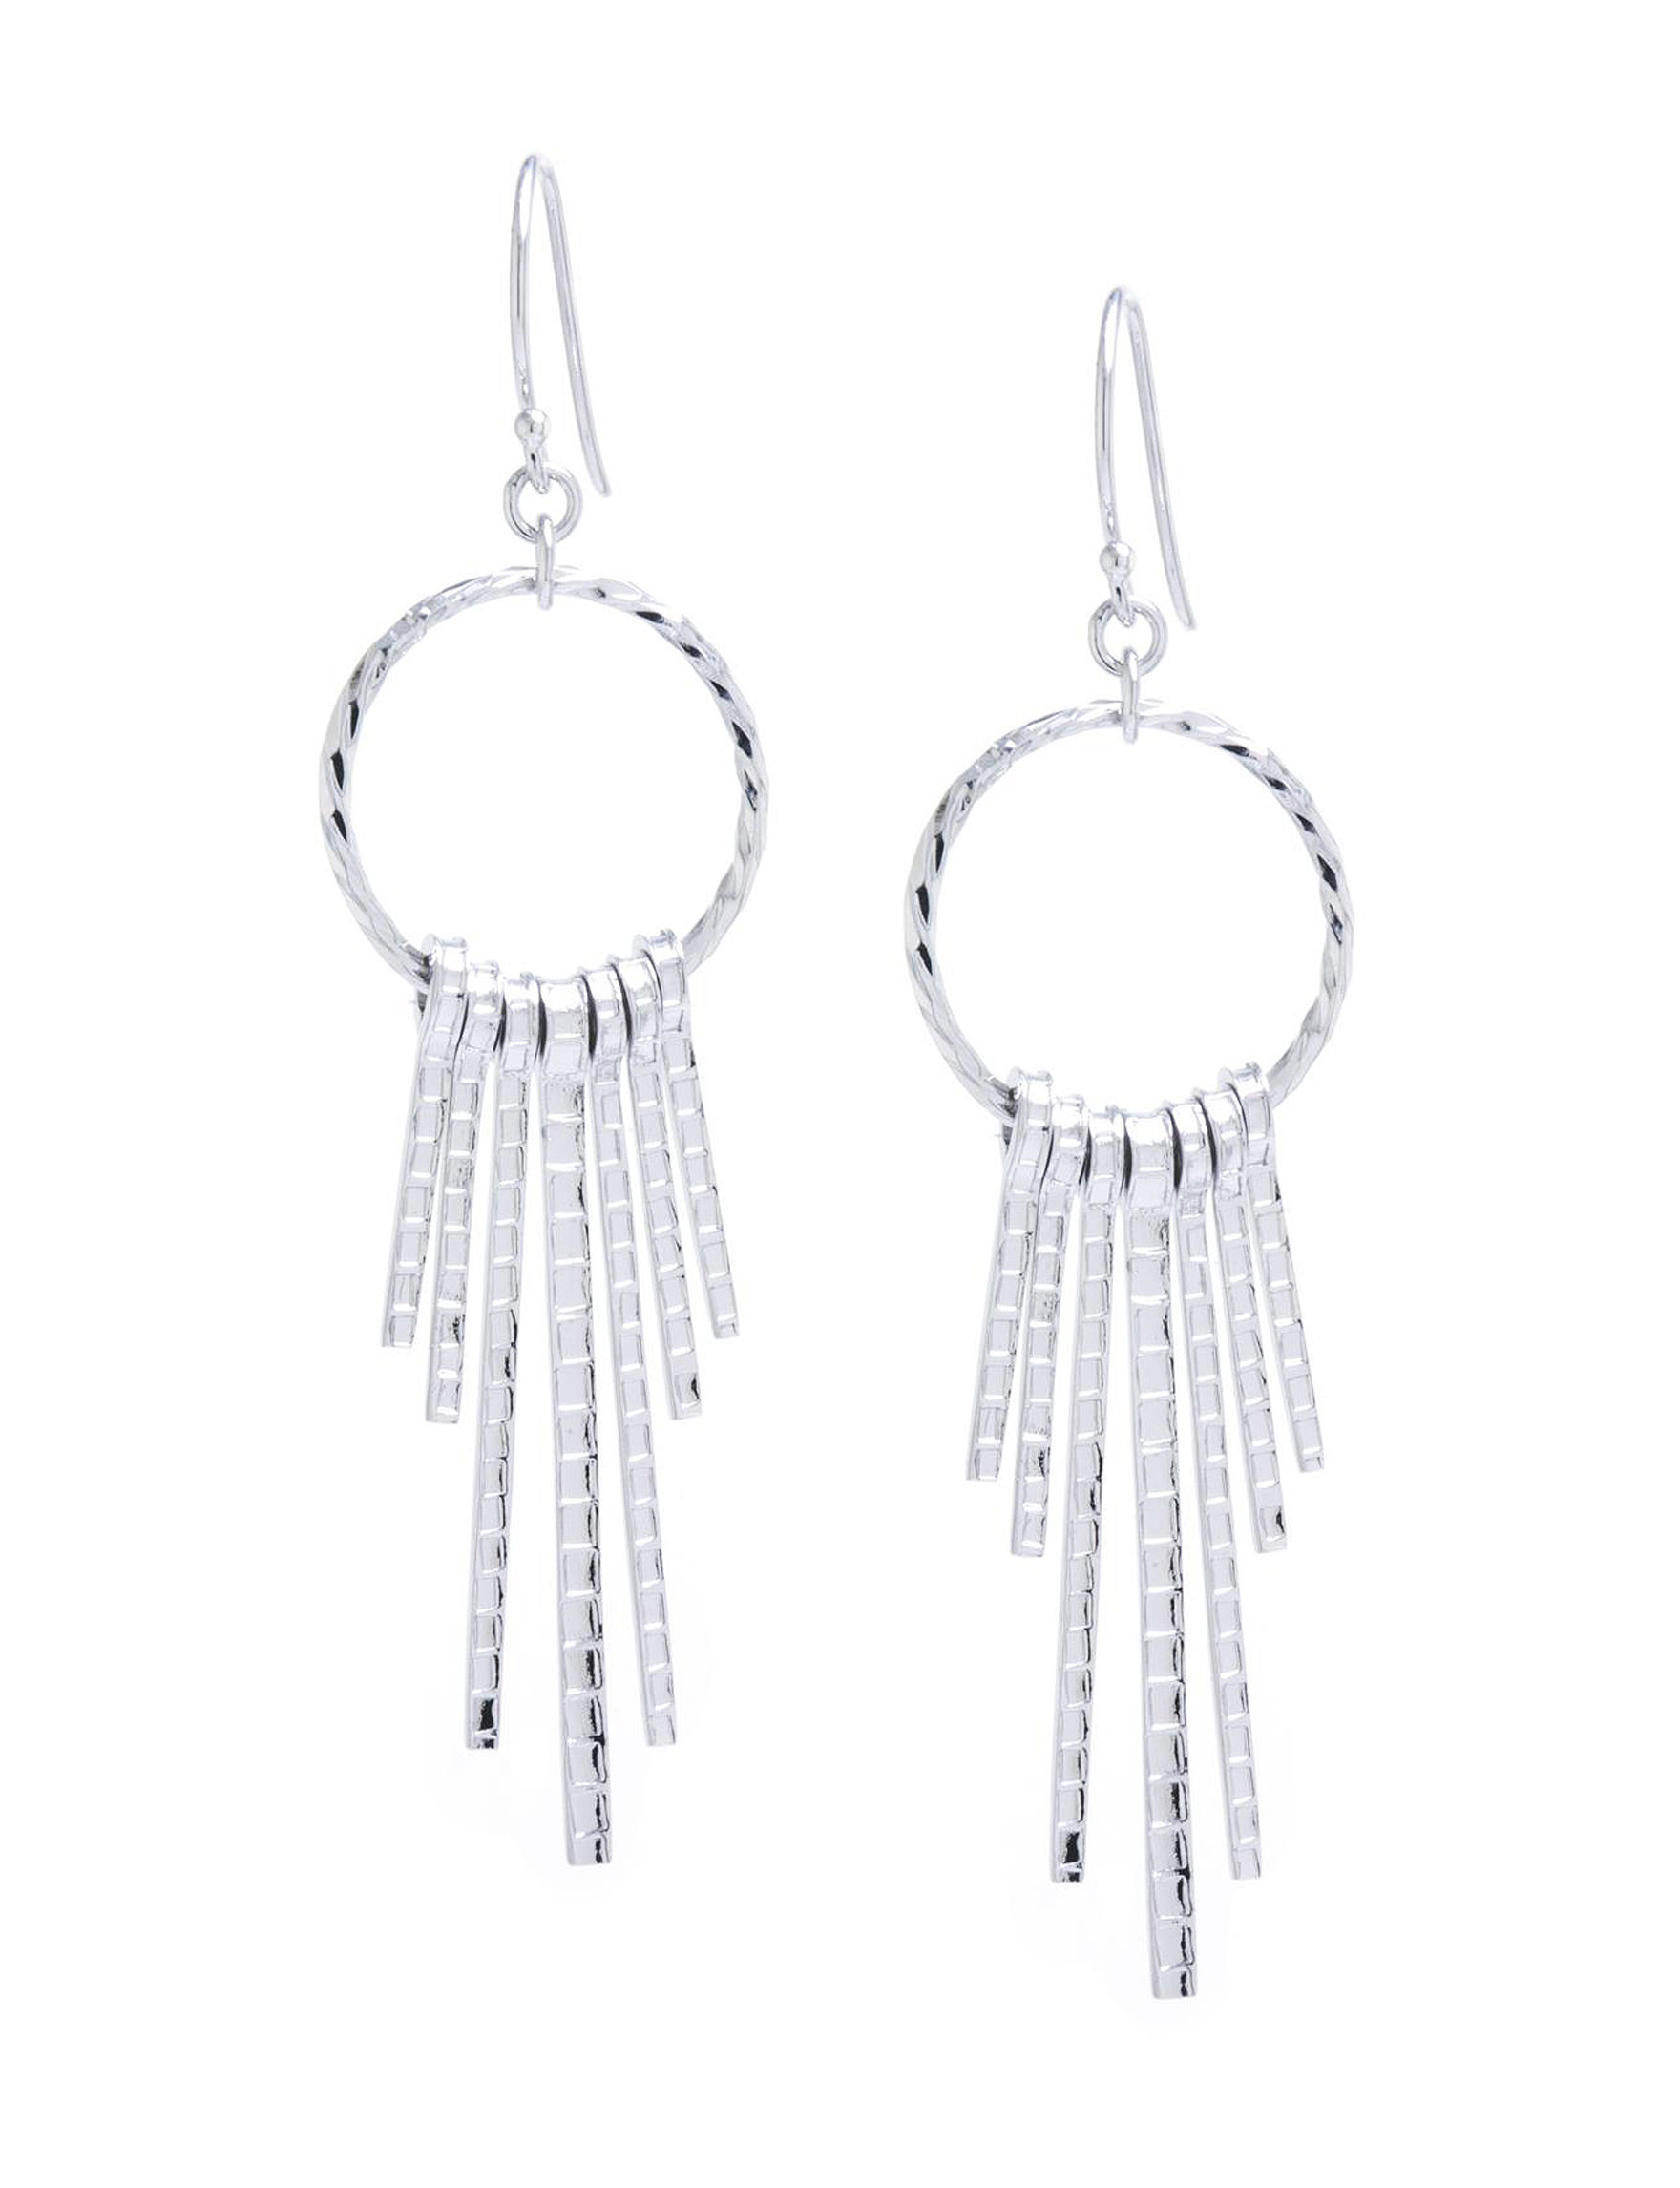 Athra Fine Silver Plated Drops Earrings Fine Jewelry